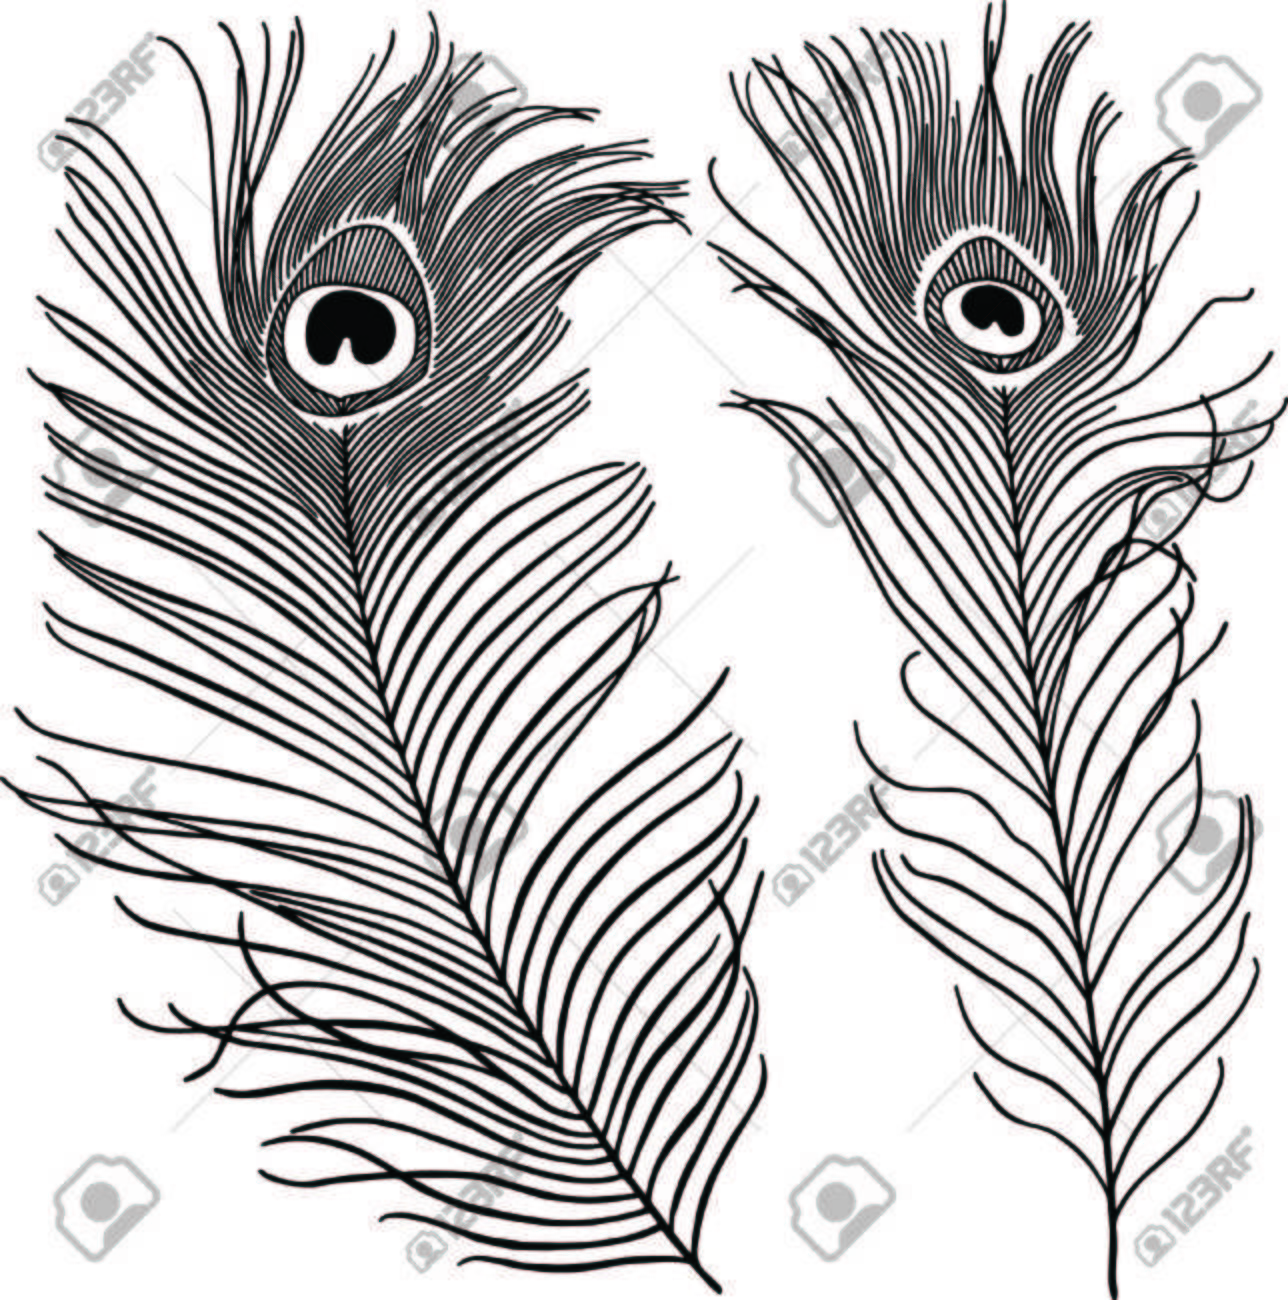 Peacock feather clipart black and white 7 » Clipart Station.